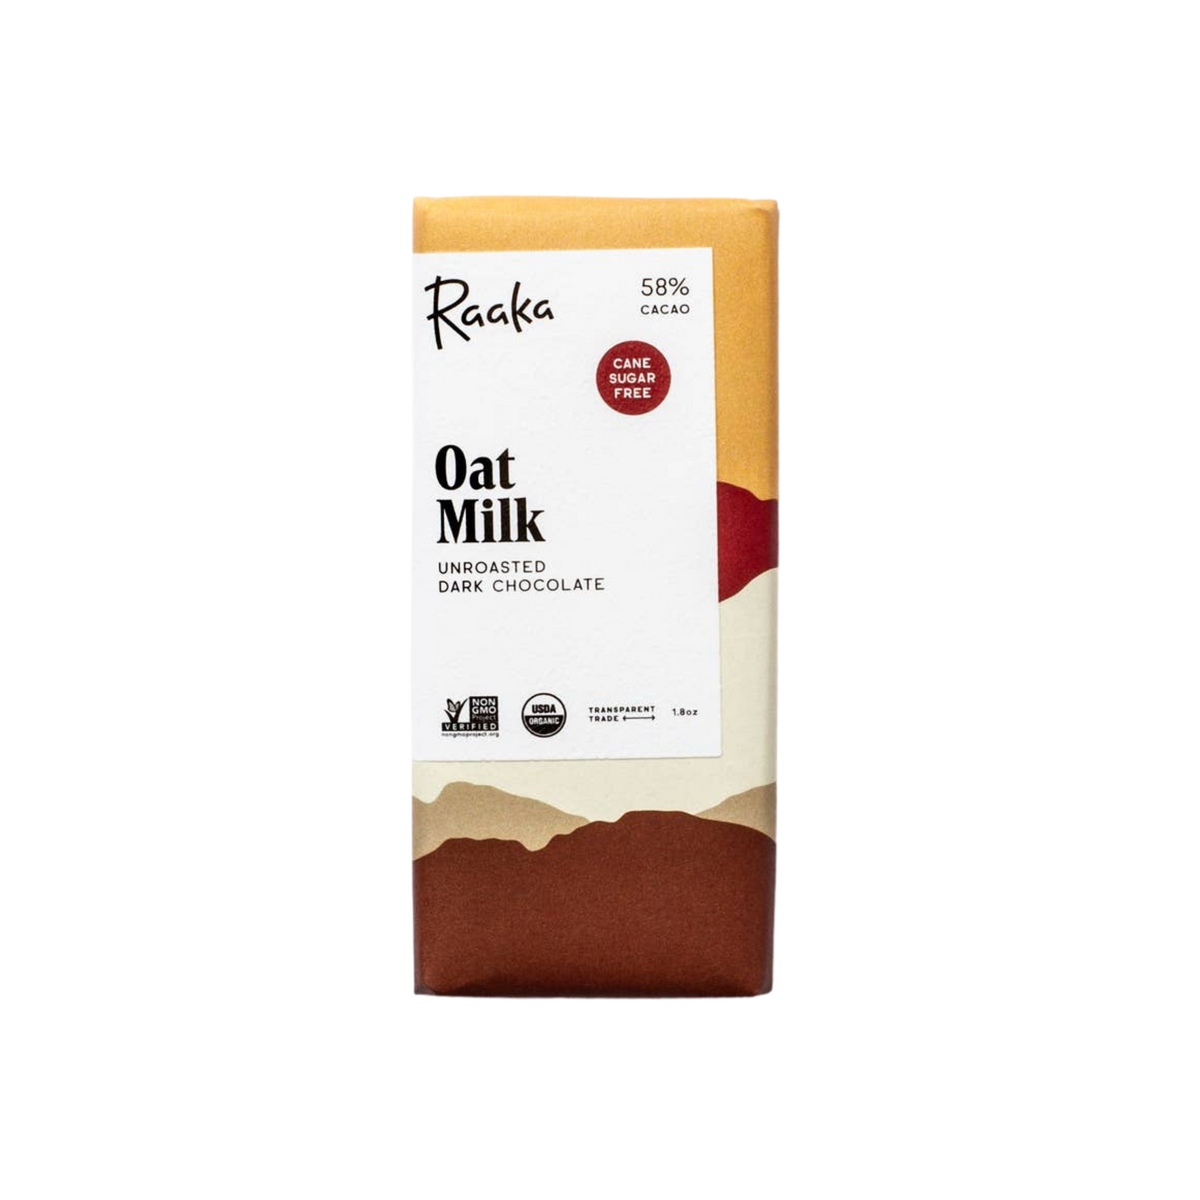 Raaka Chocolate Oat Milk Bar 1.76oz